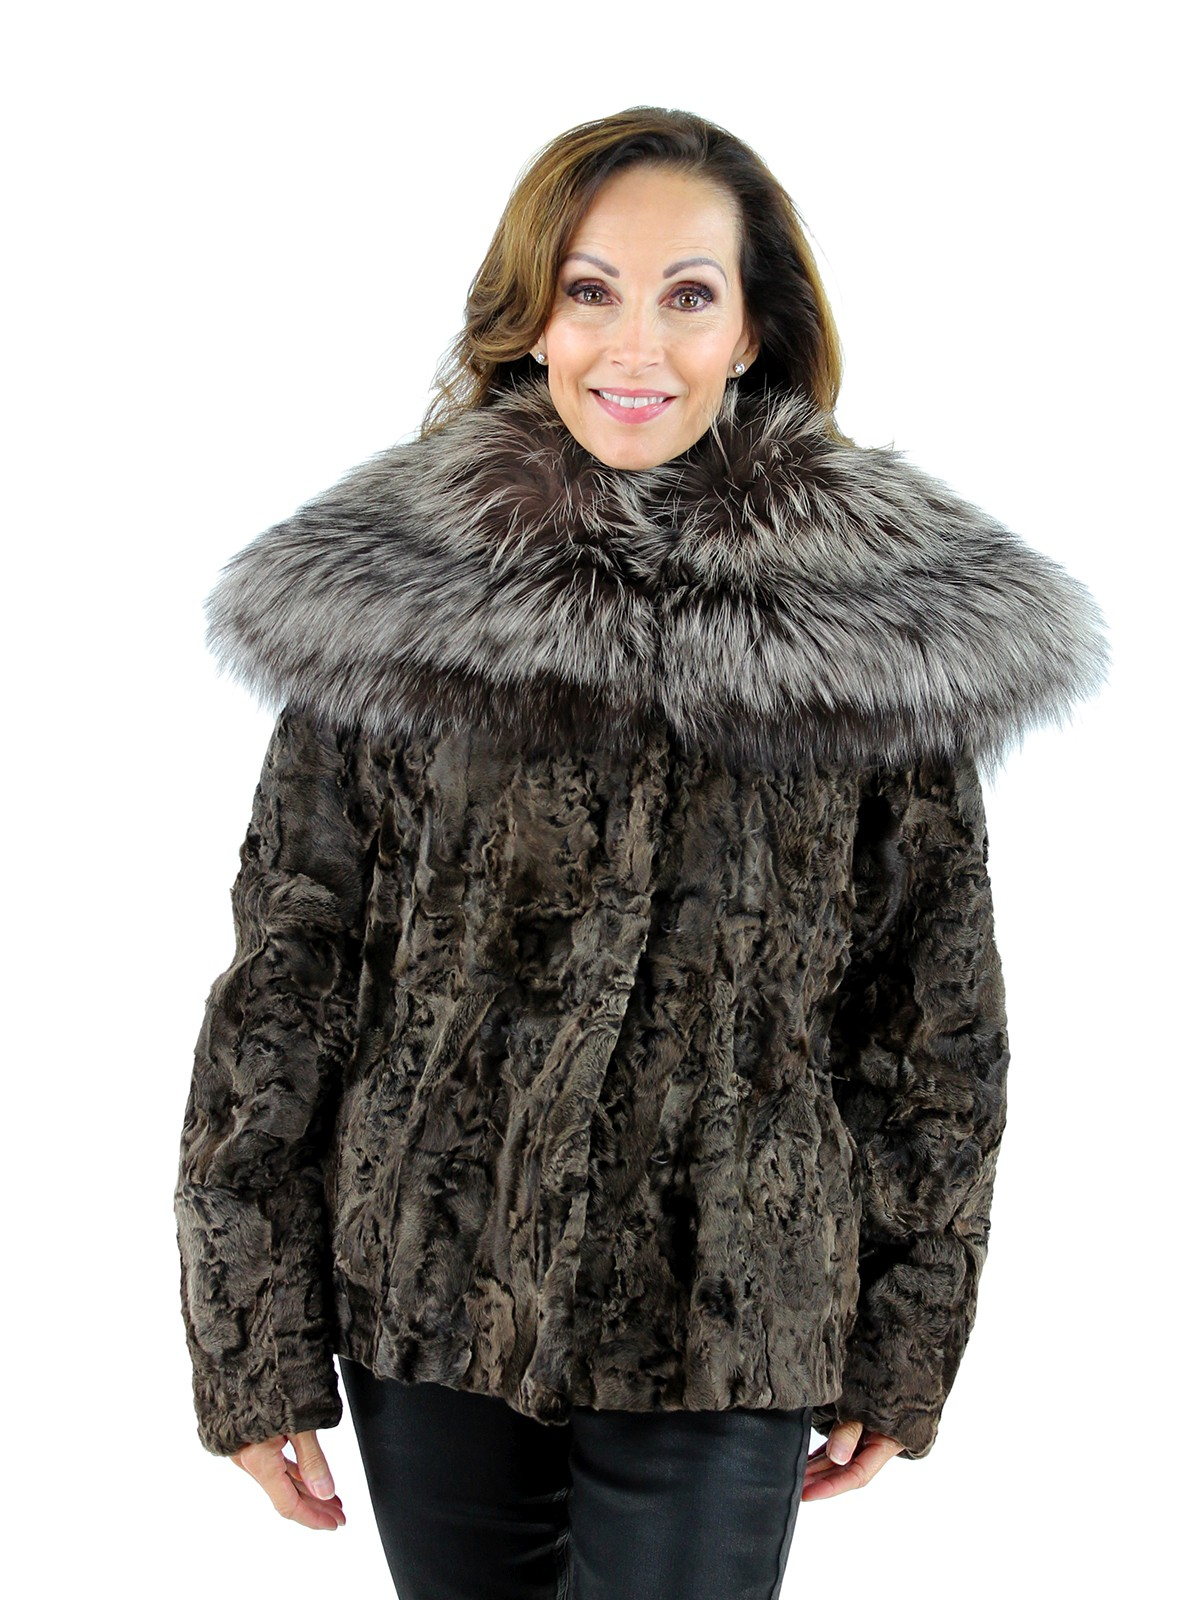 Woman's Brown Karakul Lamb Jacket with Large Silver Fox Collar